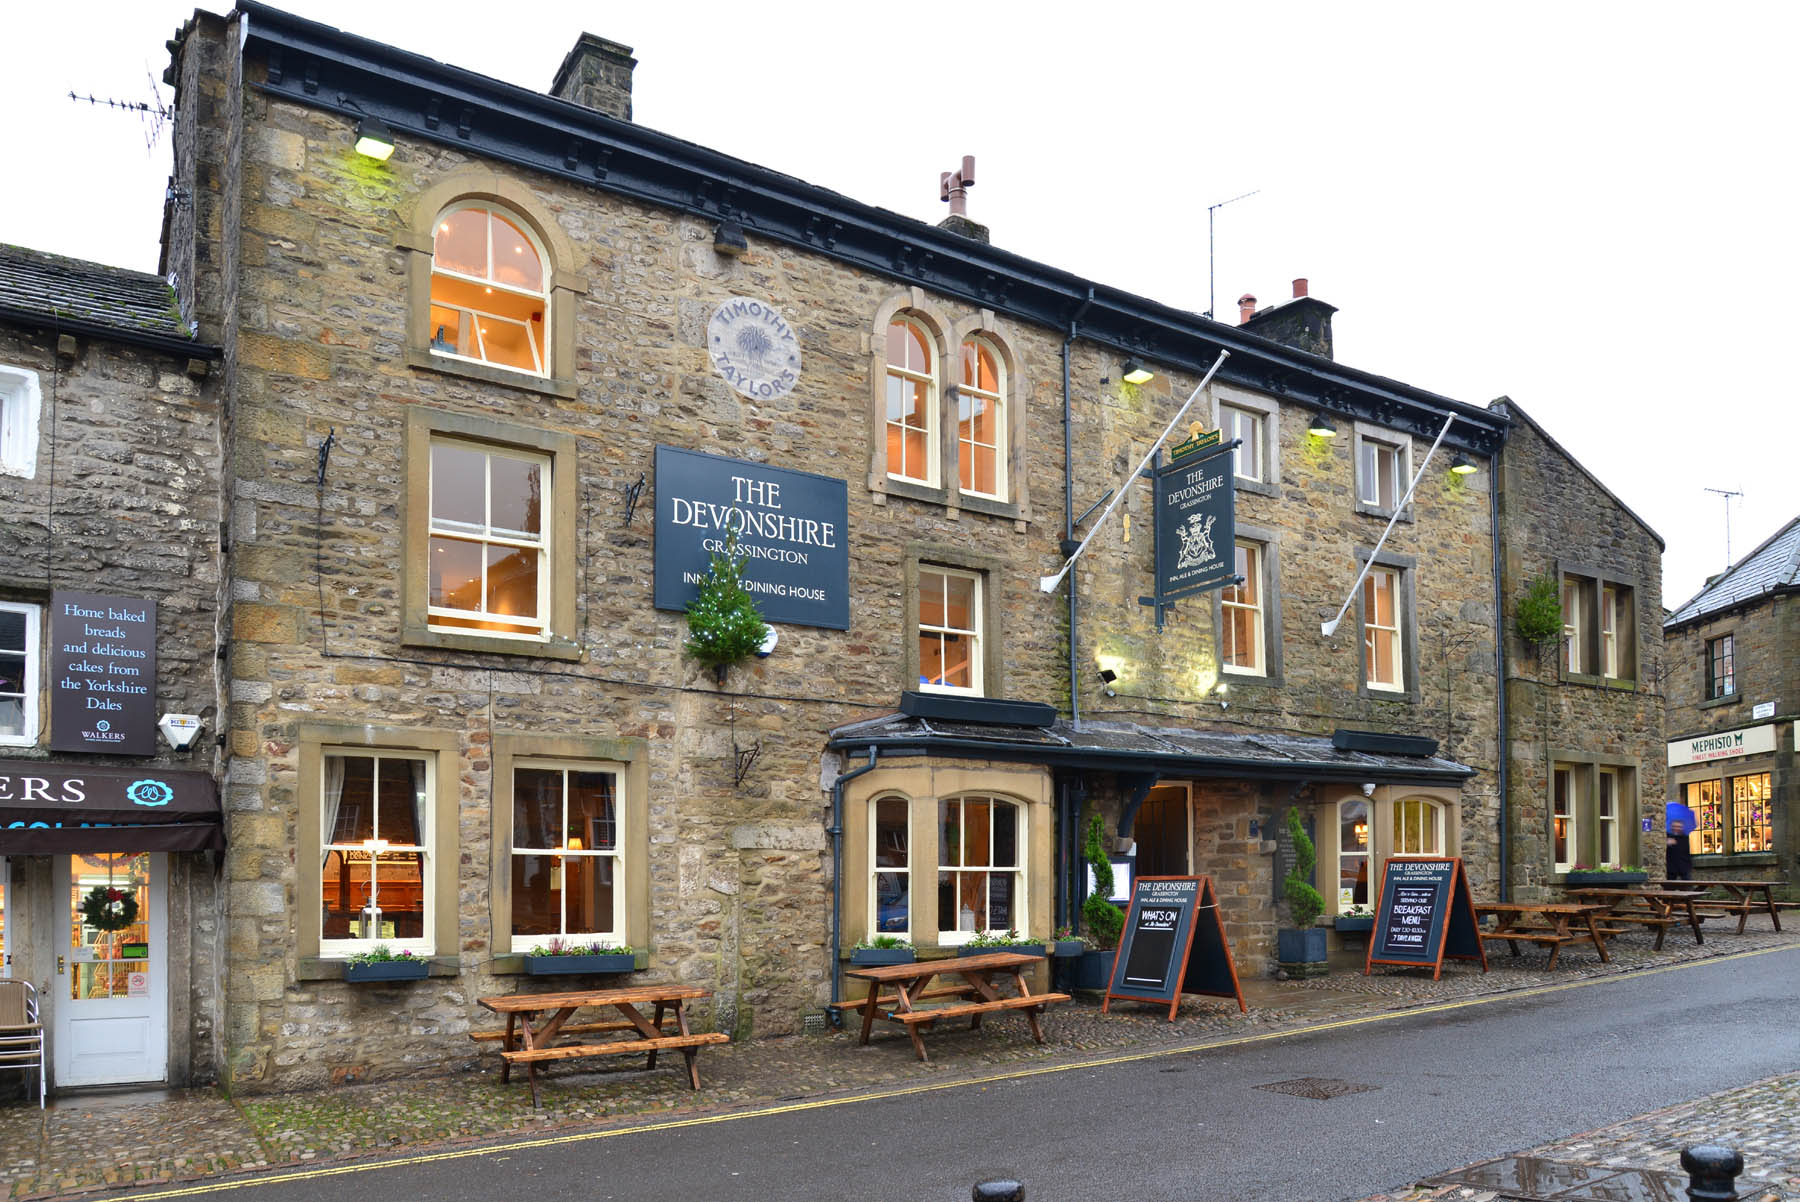 Keybury-CCTV-Partnership-Devonshire-Inn-Grassington-Taylors-Security